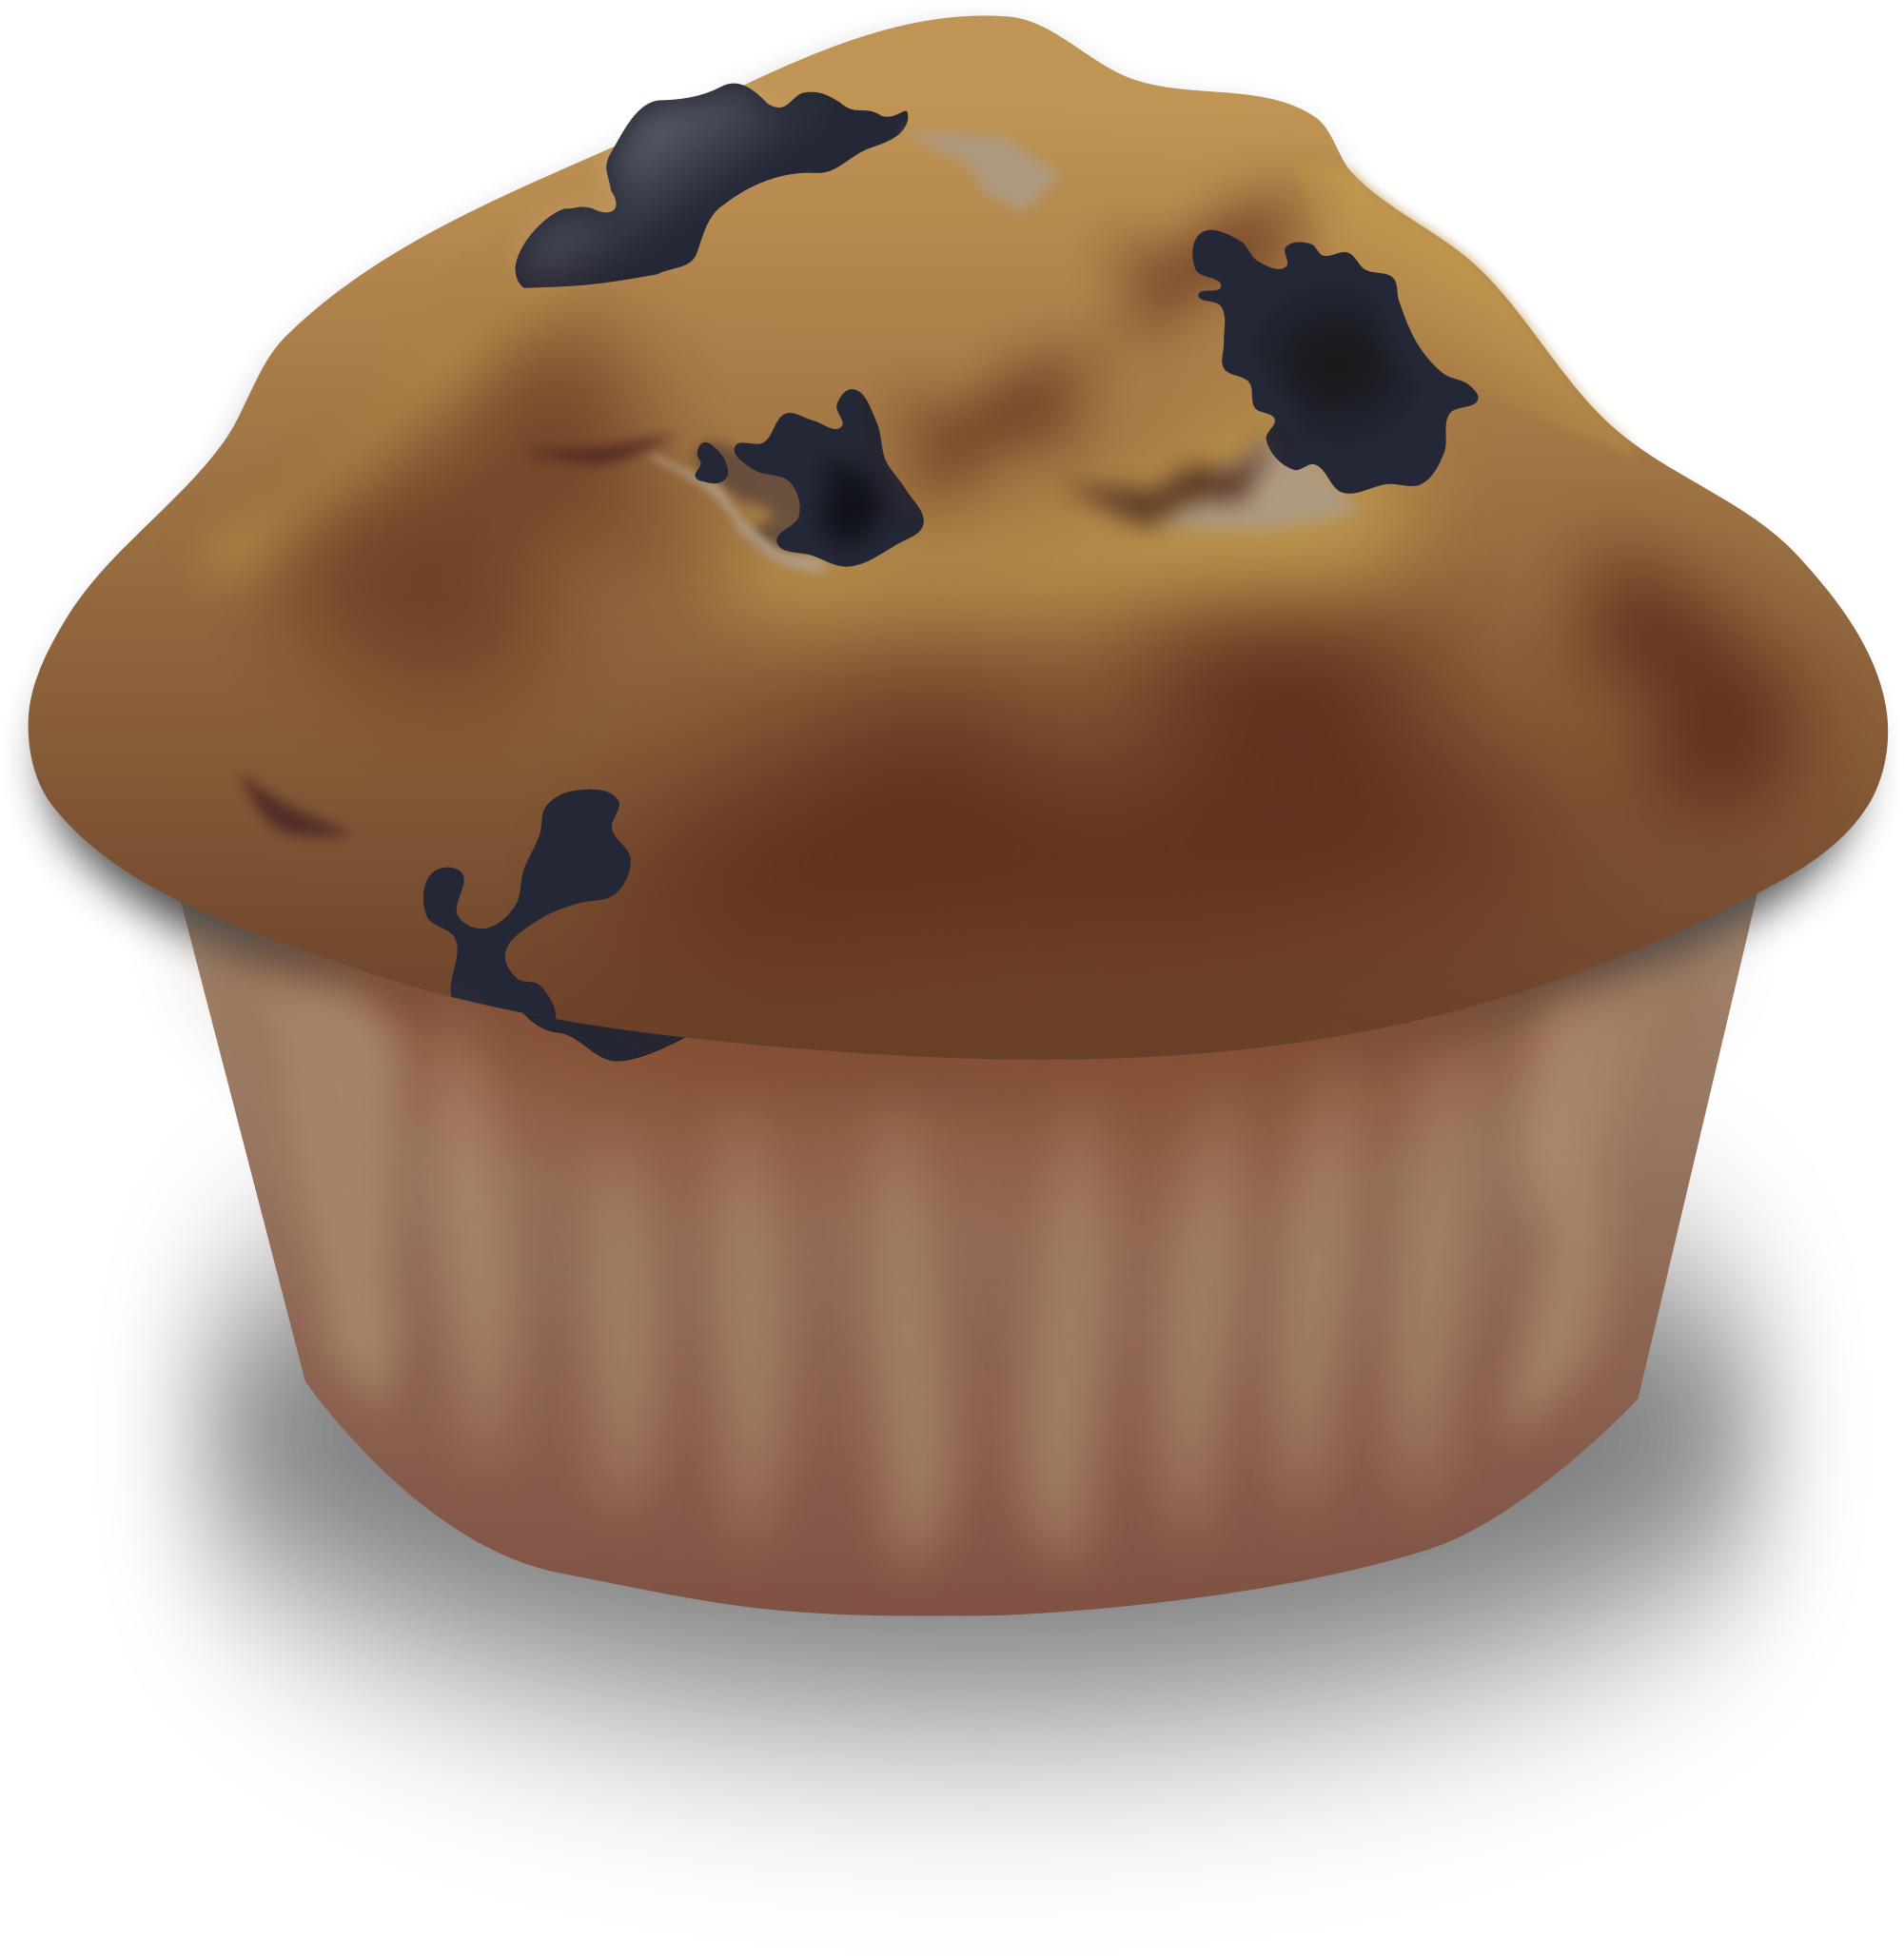 Muffins clipart autumn. Ppt module all documents